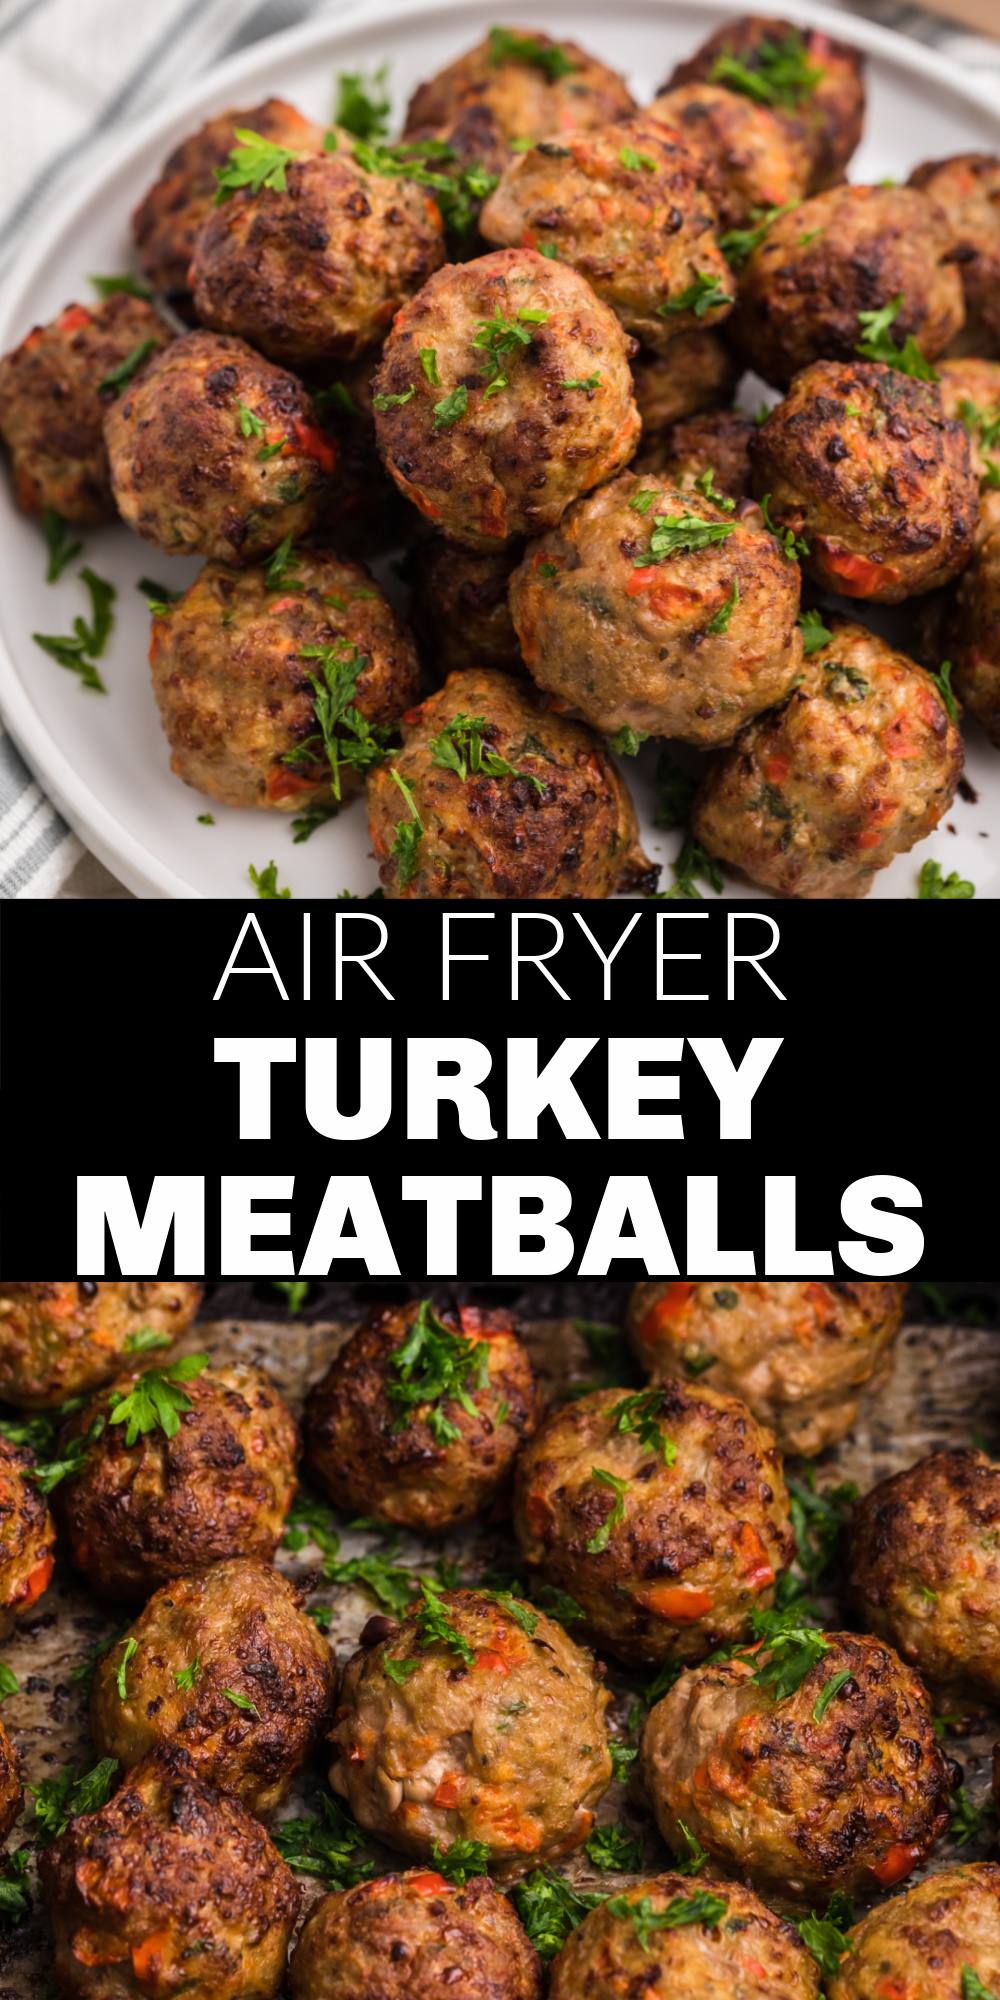 Air Fryer Turkey Meatballs are made with lean ground turkey, chopped bell pepper, fresh chopped parsley, and the perfect blend of seasonings. Perfect for an appetizer or a snack! It's an easy air fryer recipe that can be made from start to finish in just 15 minutes.